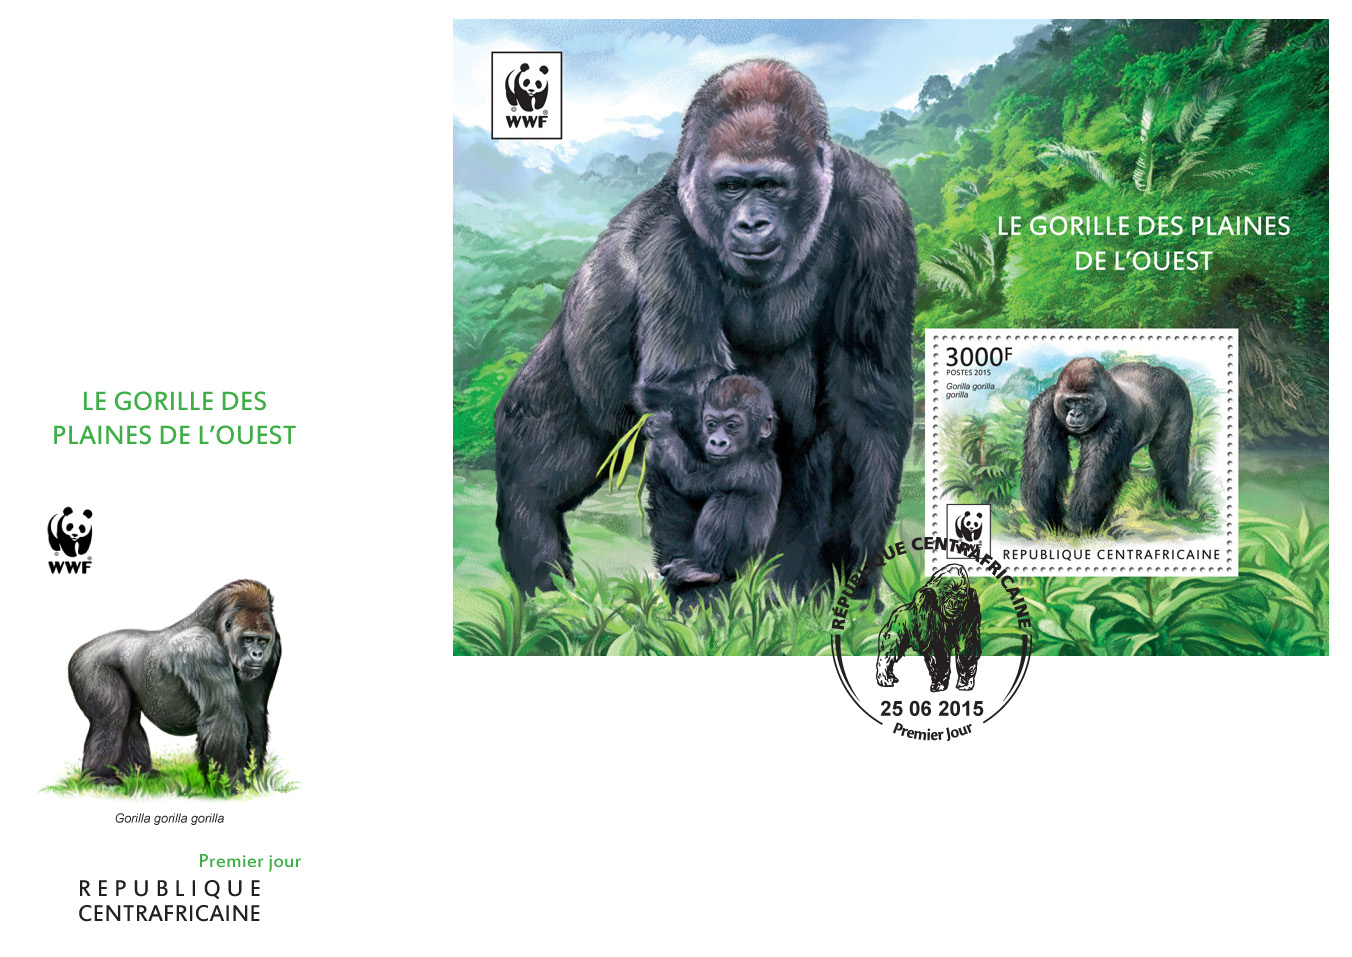 WWF – Gorilla (FDC) - Issue of Central African republic postage stamps